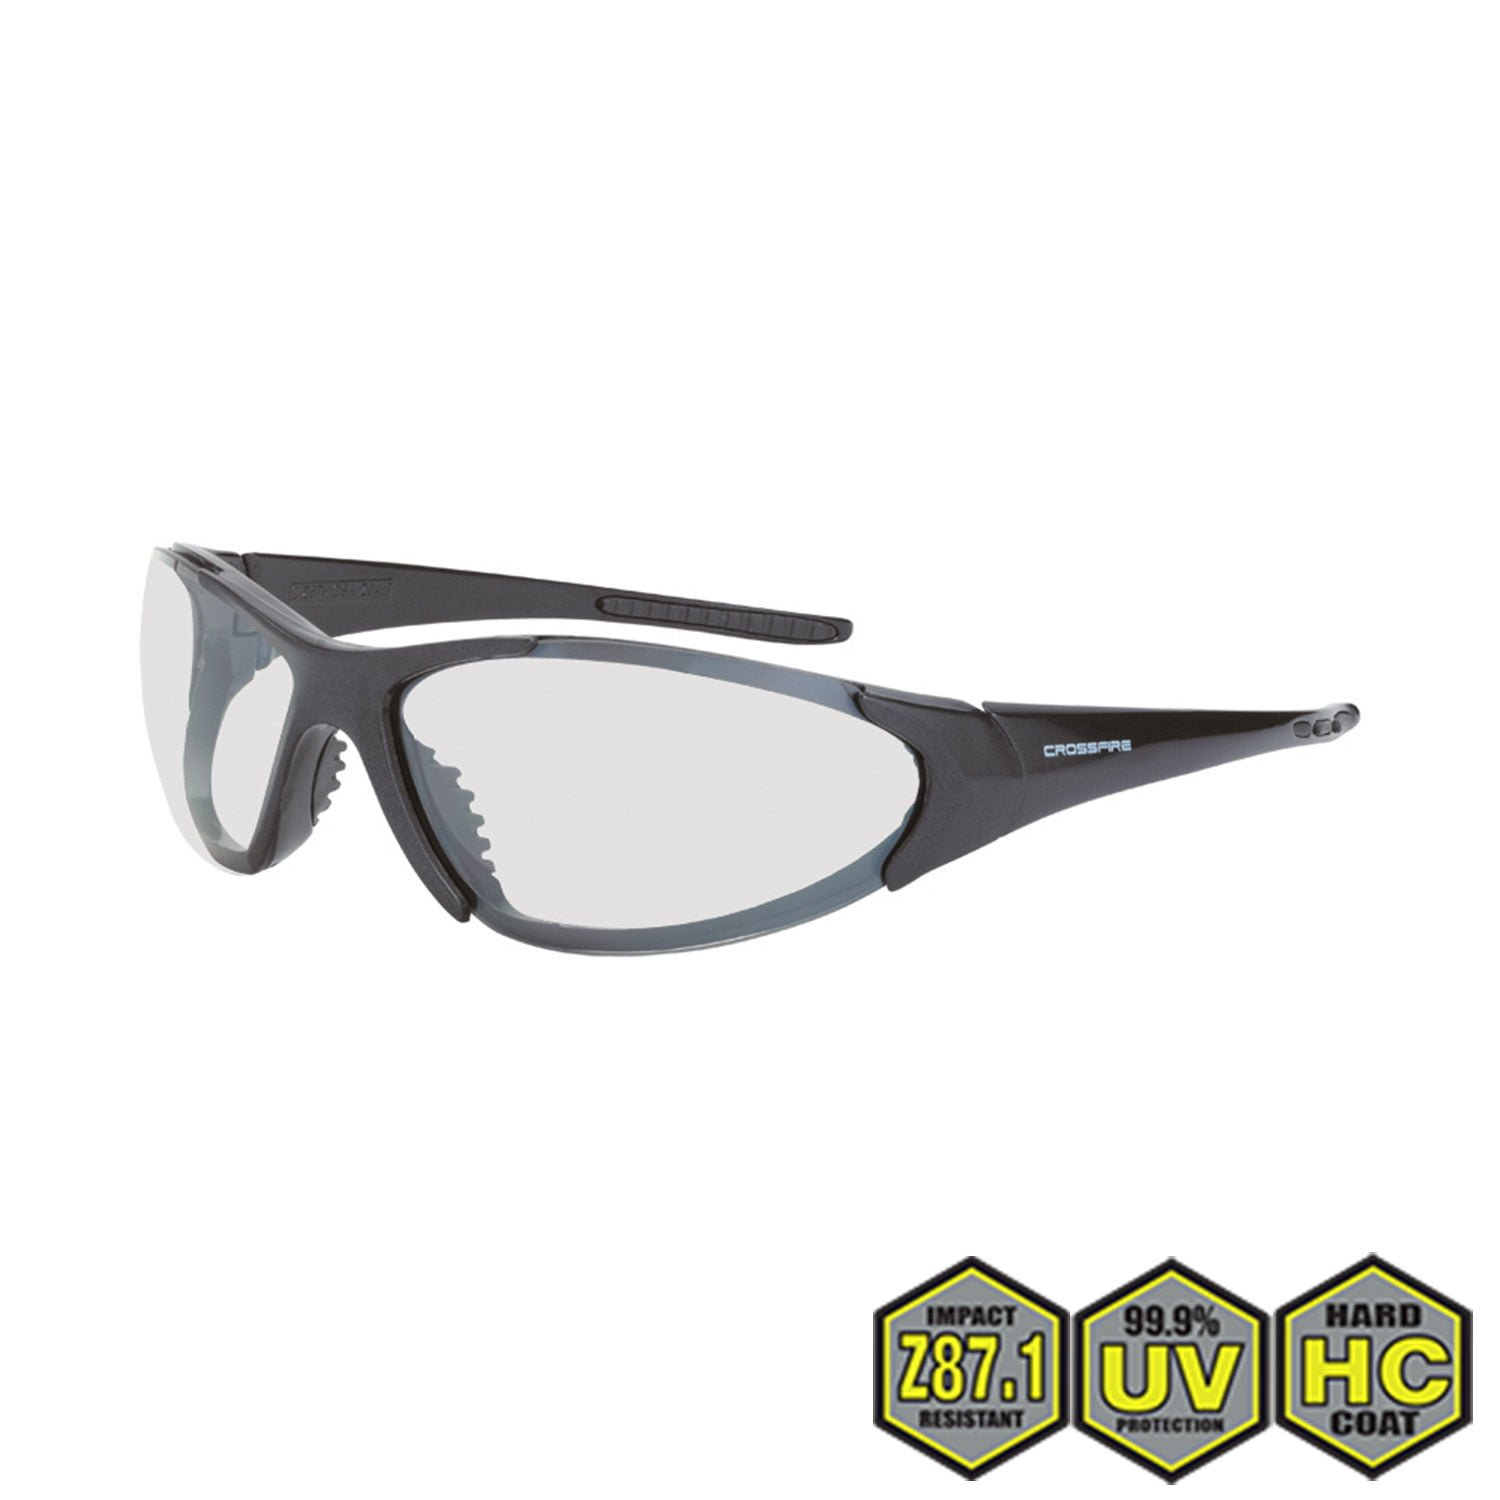 a778fb33bf8 Radians Crossfire Core Safety Glasses